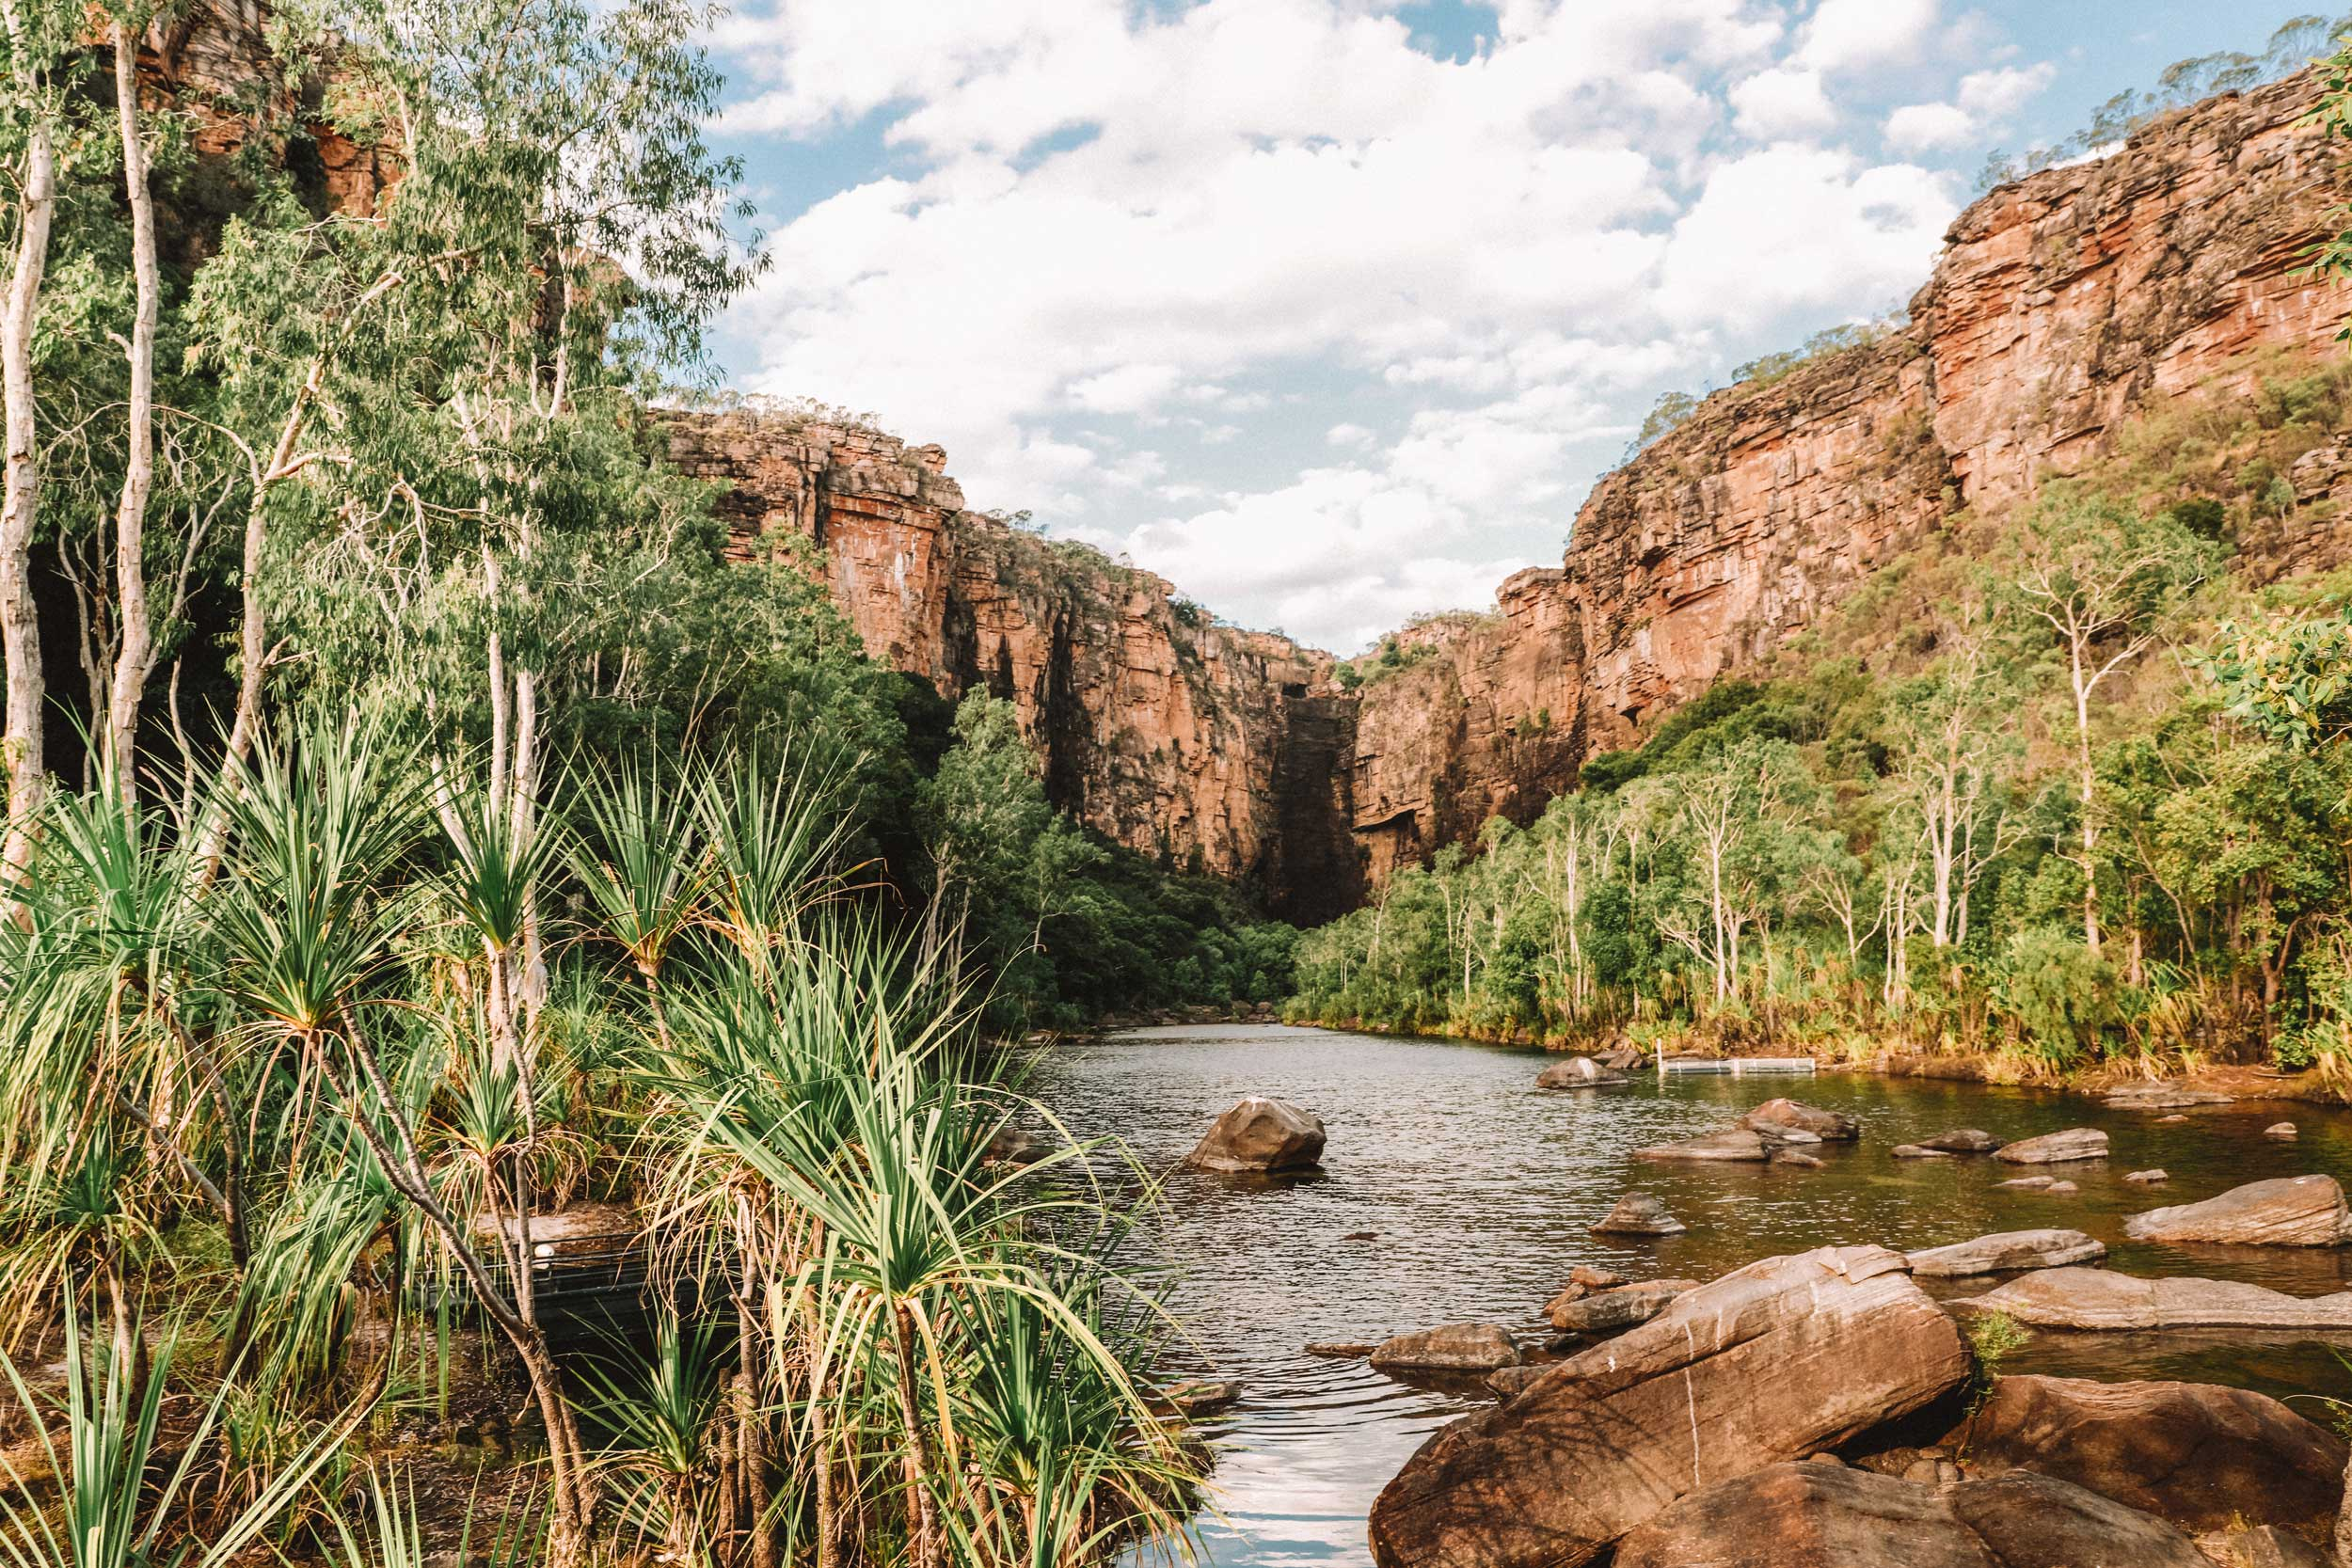 River running through lush green foliage in a gorge, Kakadu National Park